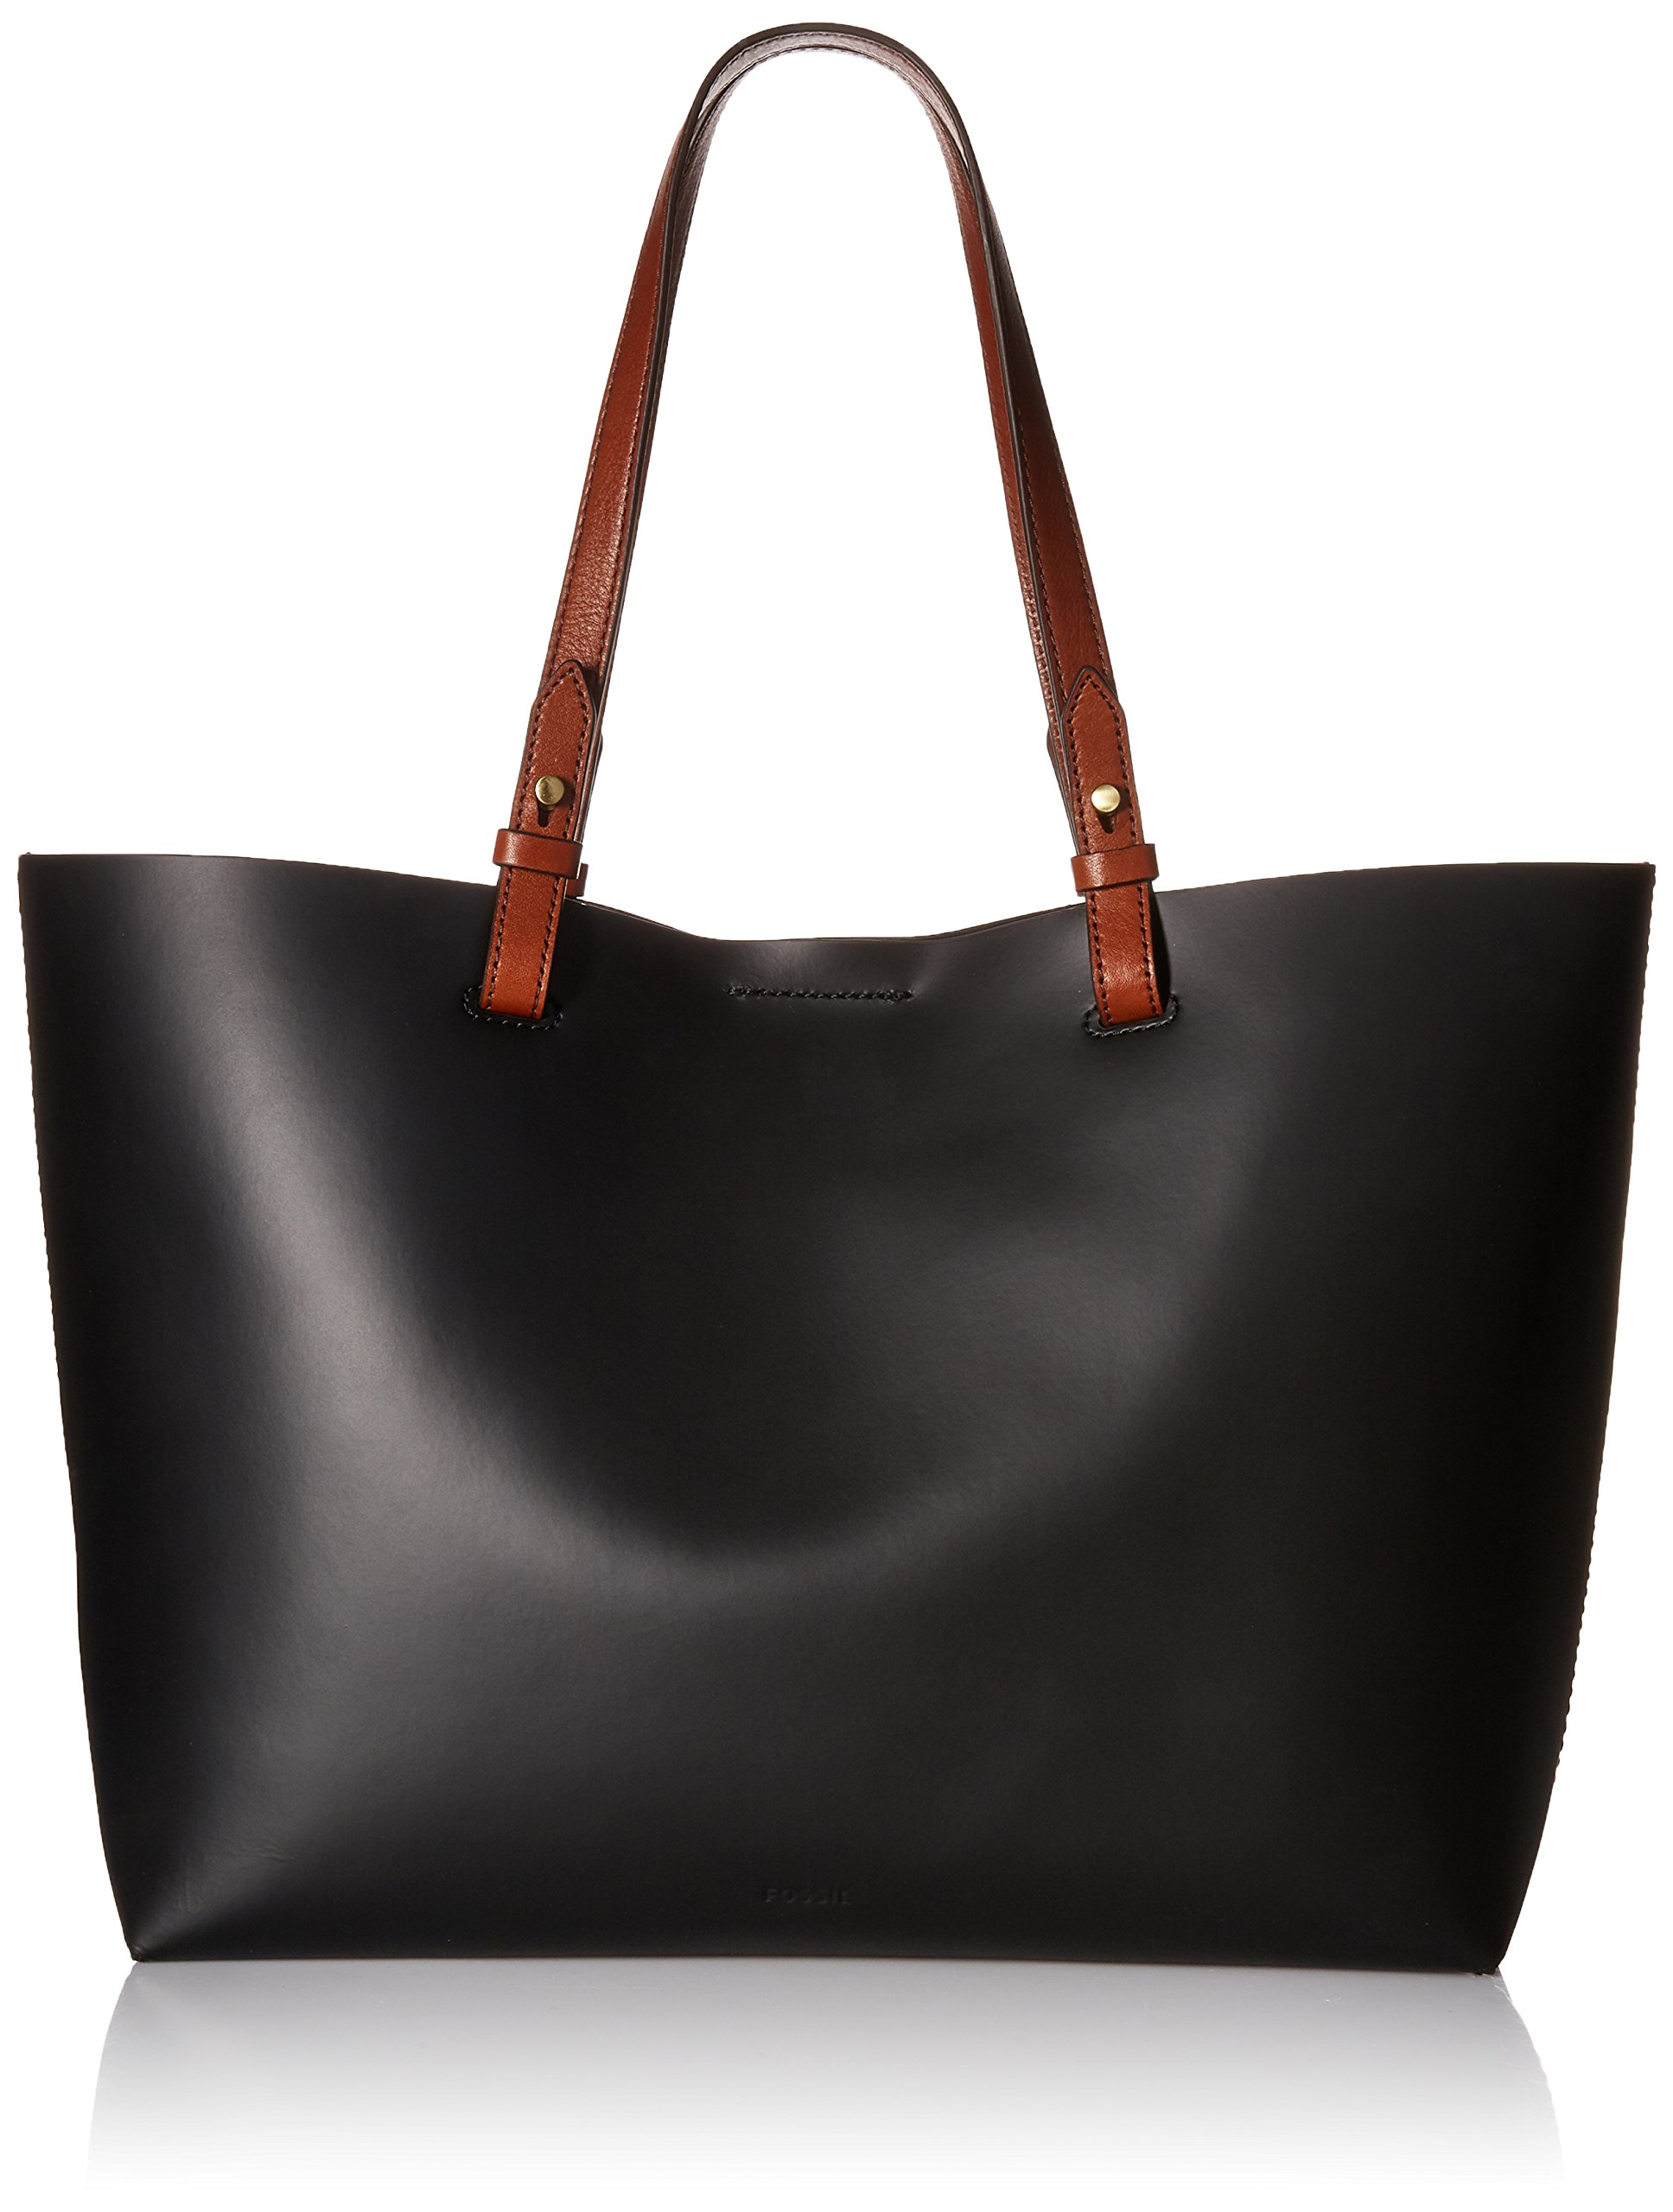 Fossil Rachel Tote, Black, One Size